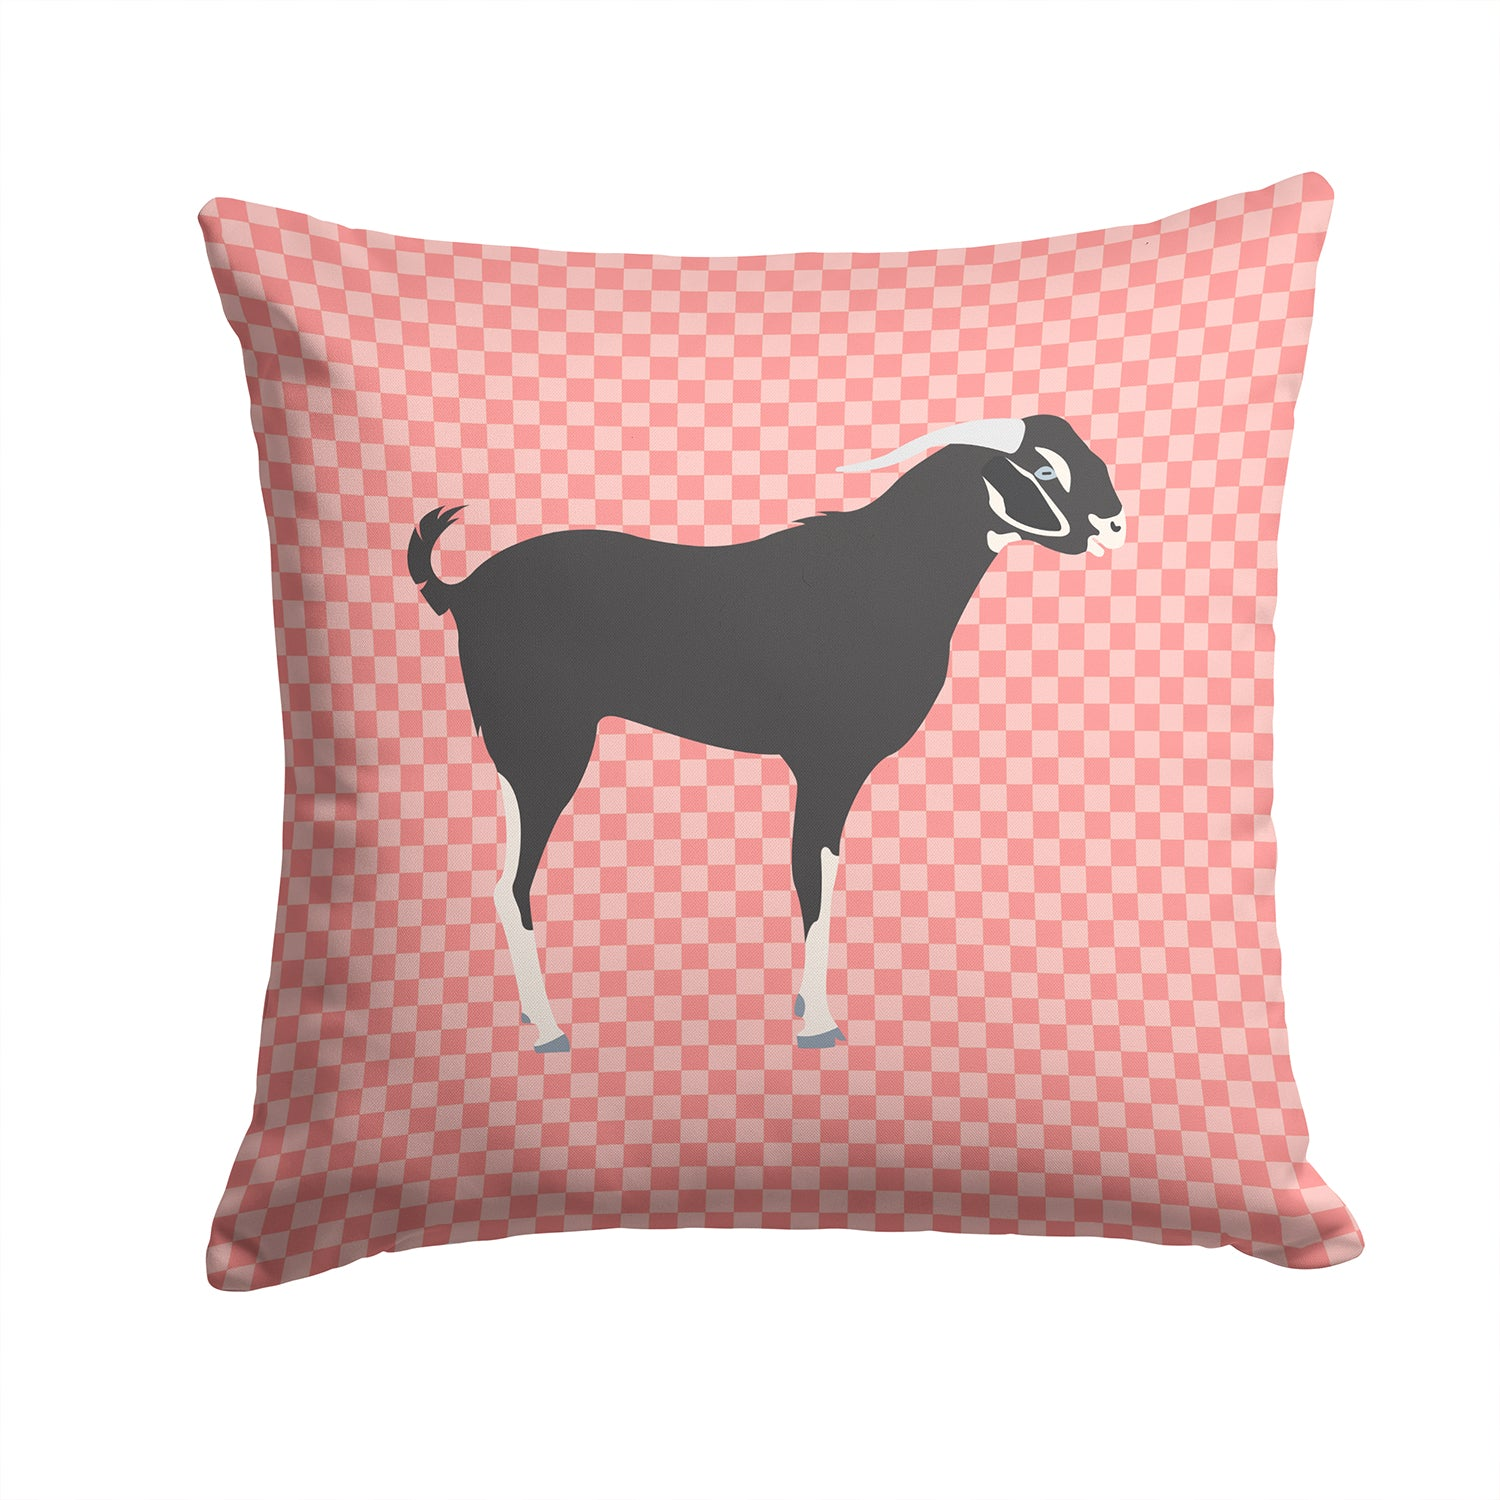 Black Bengal Goat Pink Check Fabric Decorative Pillow BB7884PW1414 by Caroline's Treasures